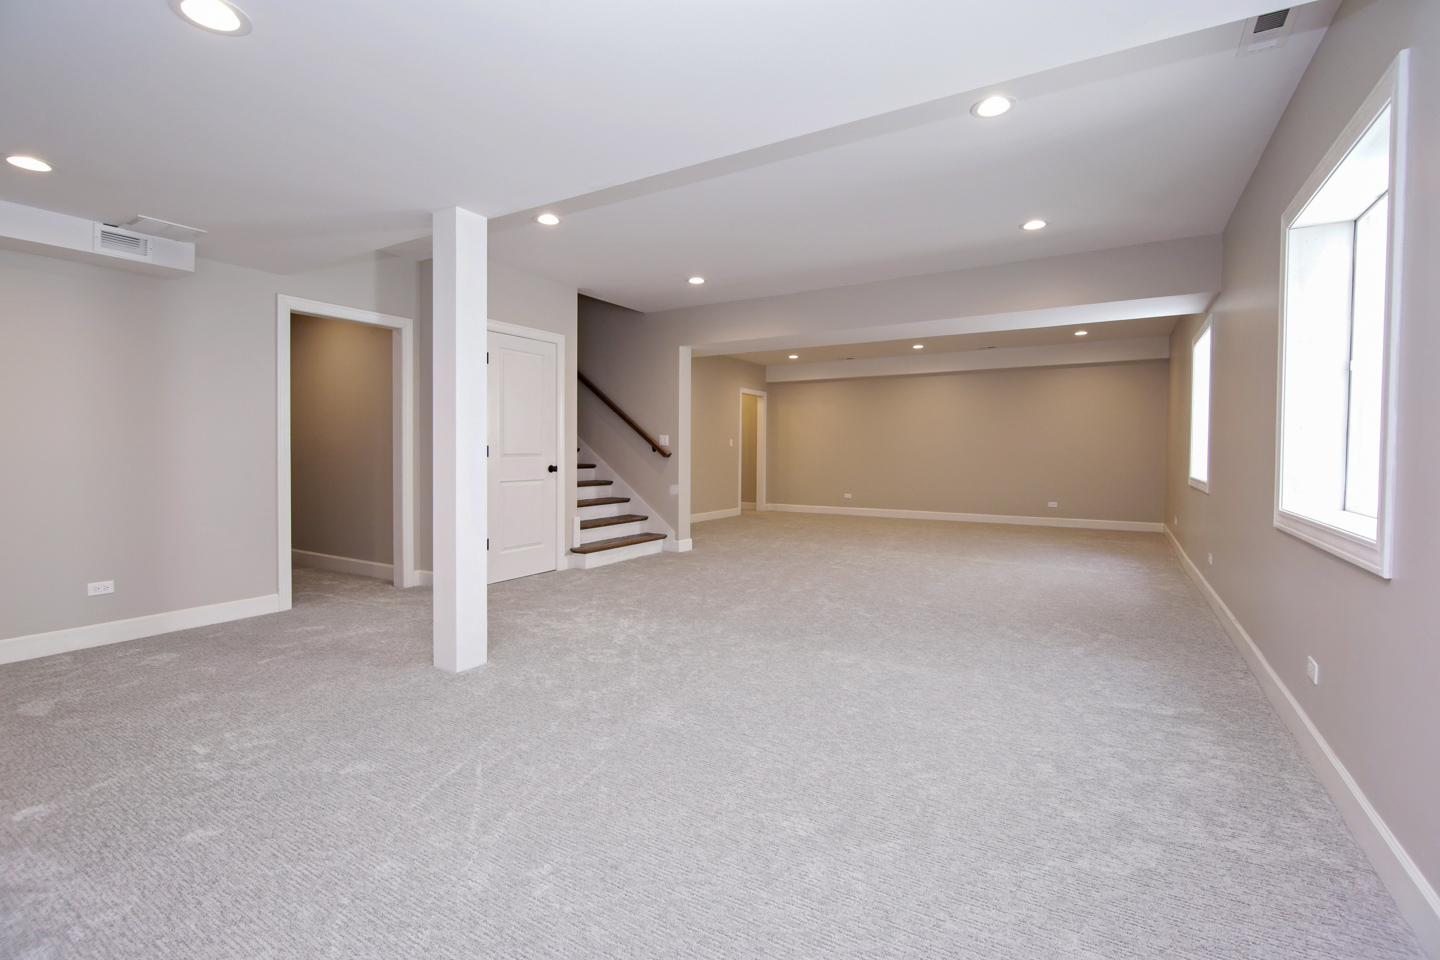 basement by AMA Development Deerfield Illinois